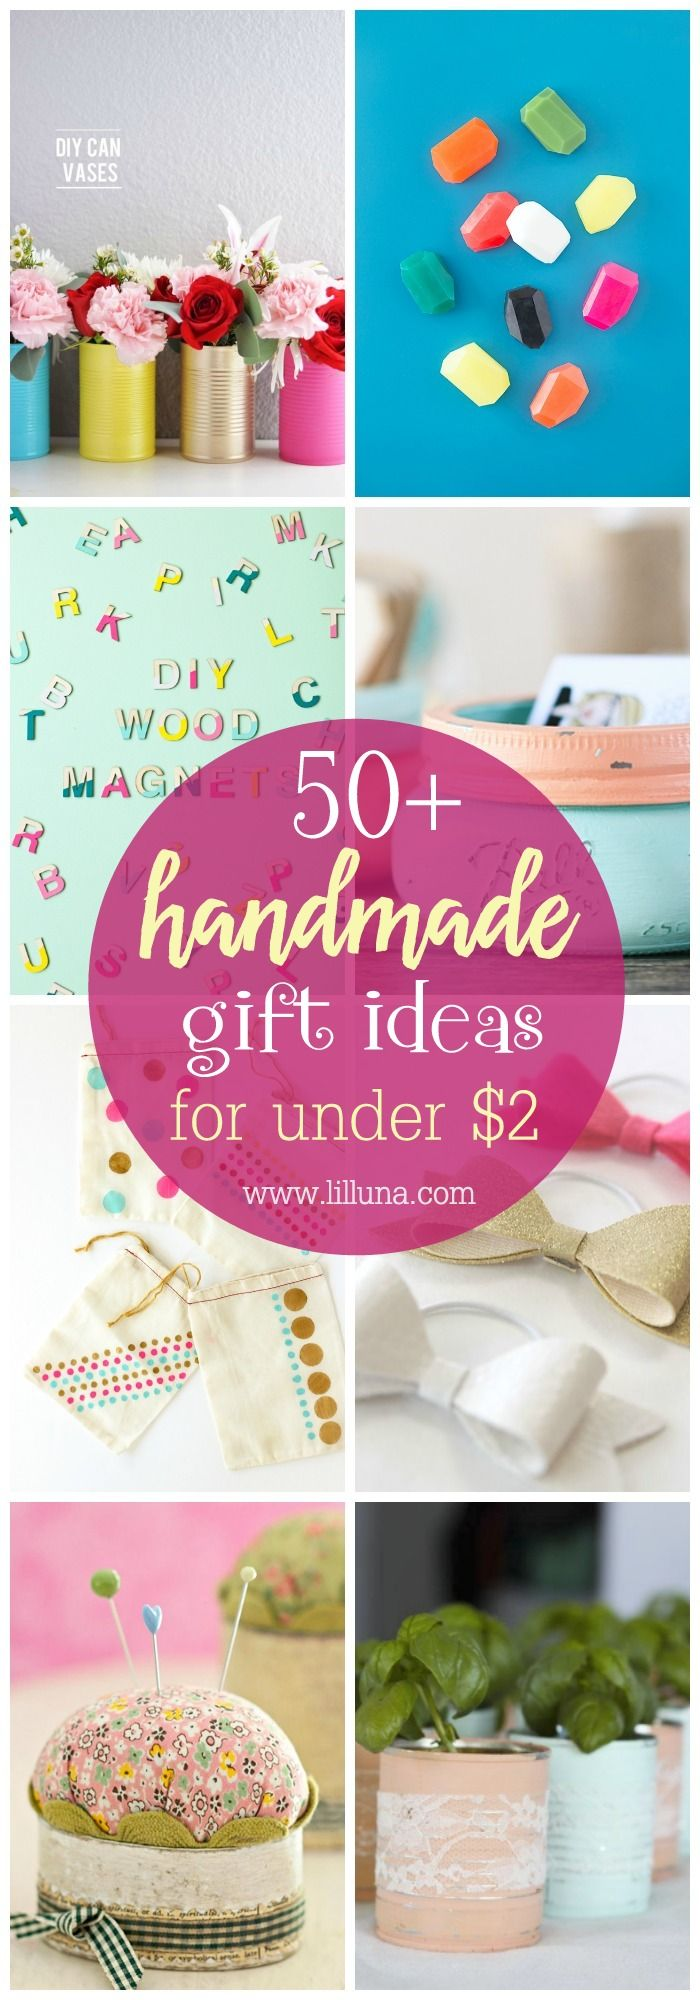 50+ Handmade Gift Ideas that can all be made for under $2!!! Check out this grea...